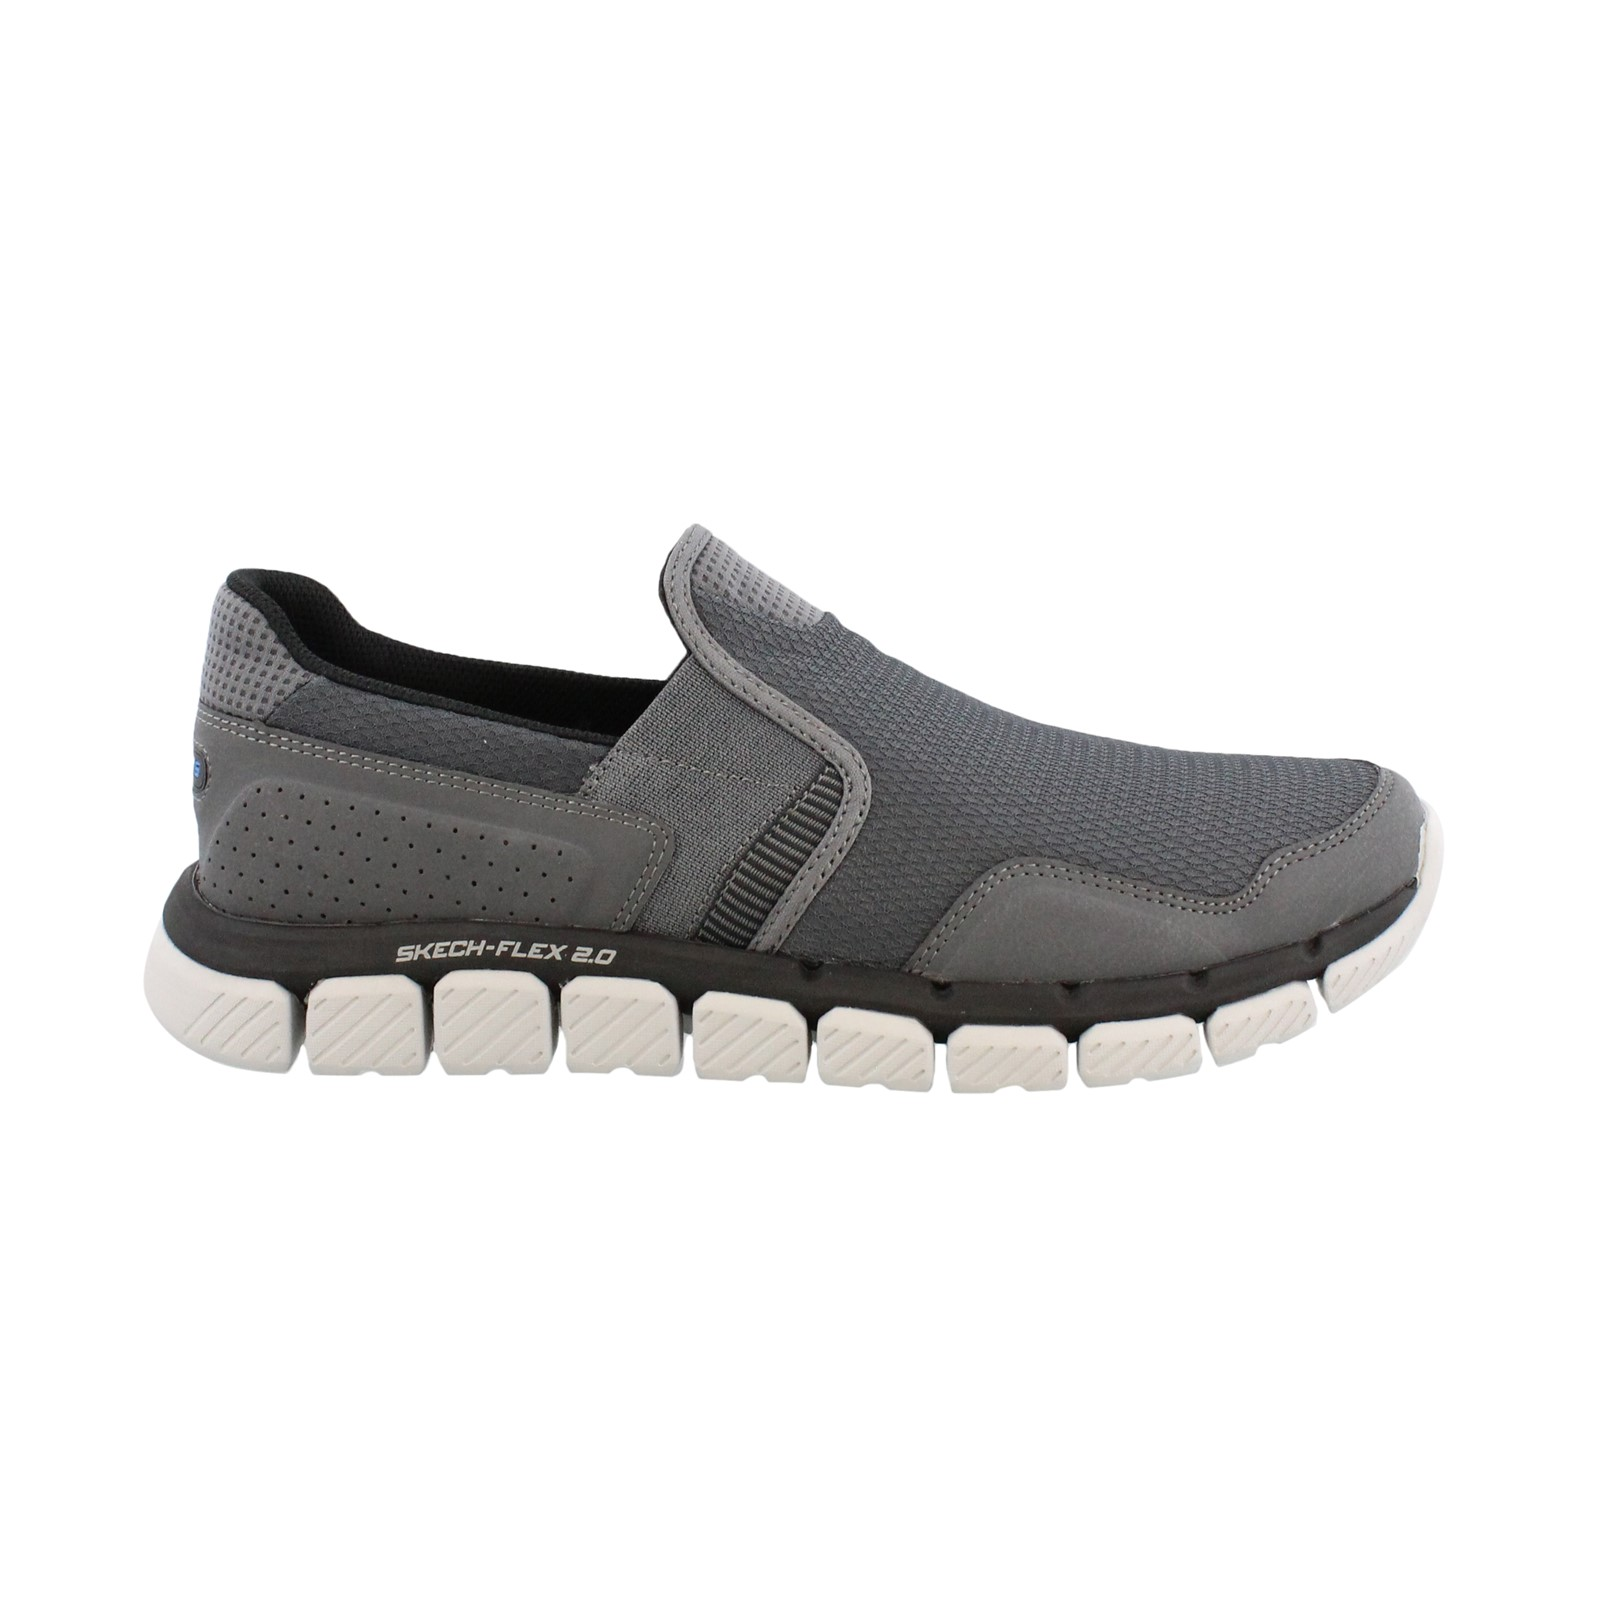 Men's Skechers, Skech Flex 2.0 Wentland Slip on Walking Shoes